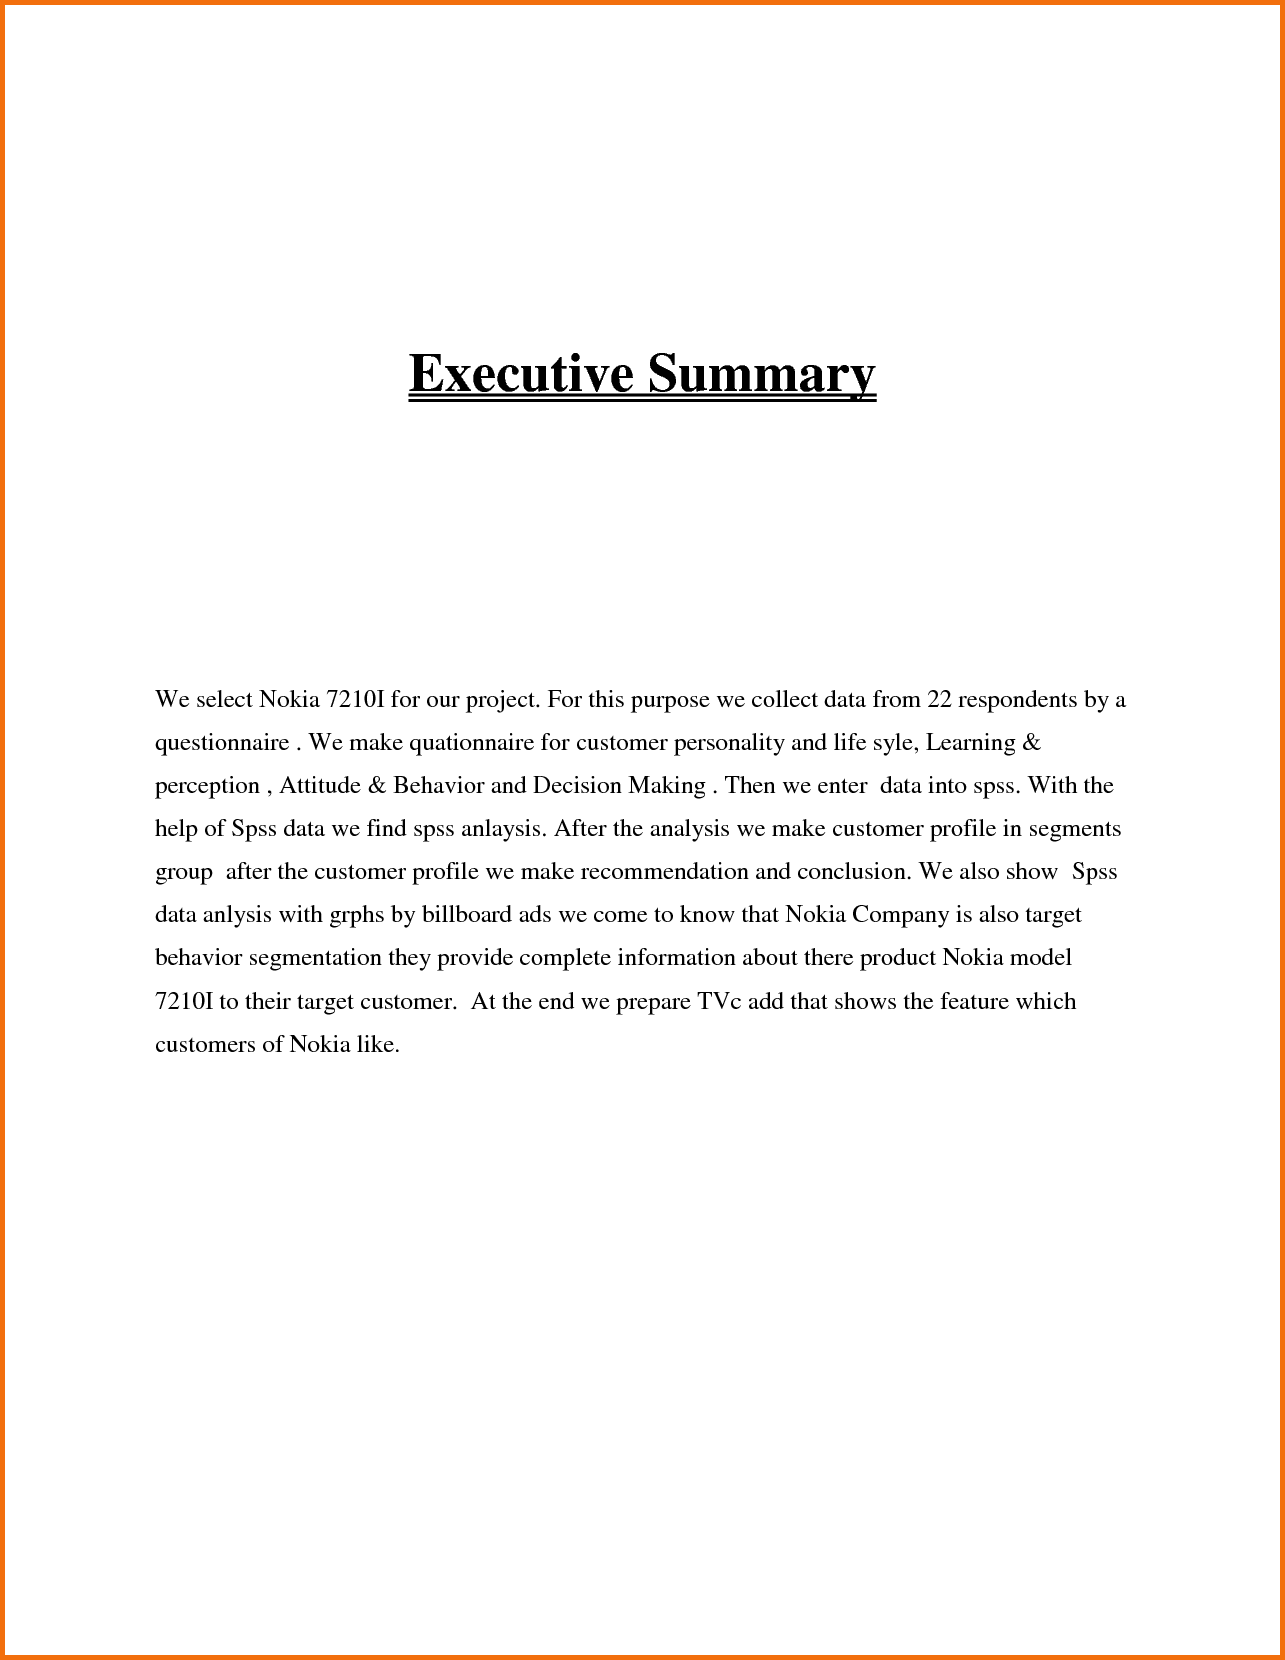 executive summary sample executive summary templates pinterest